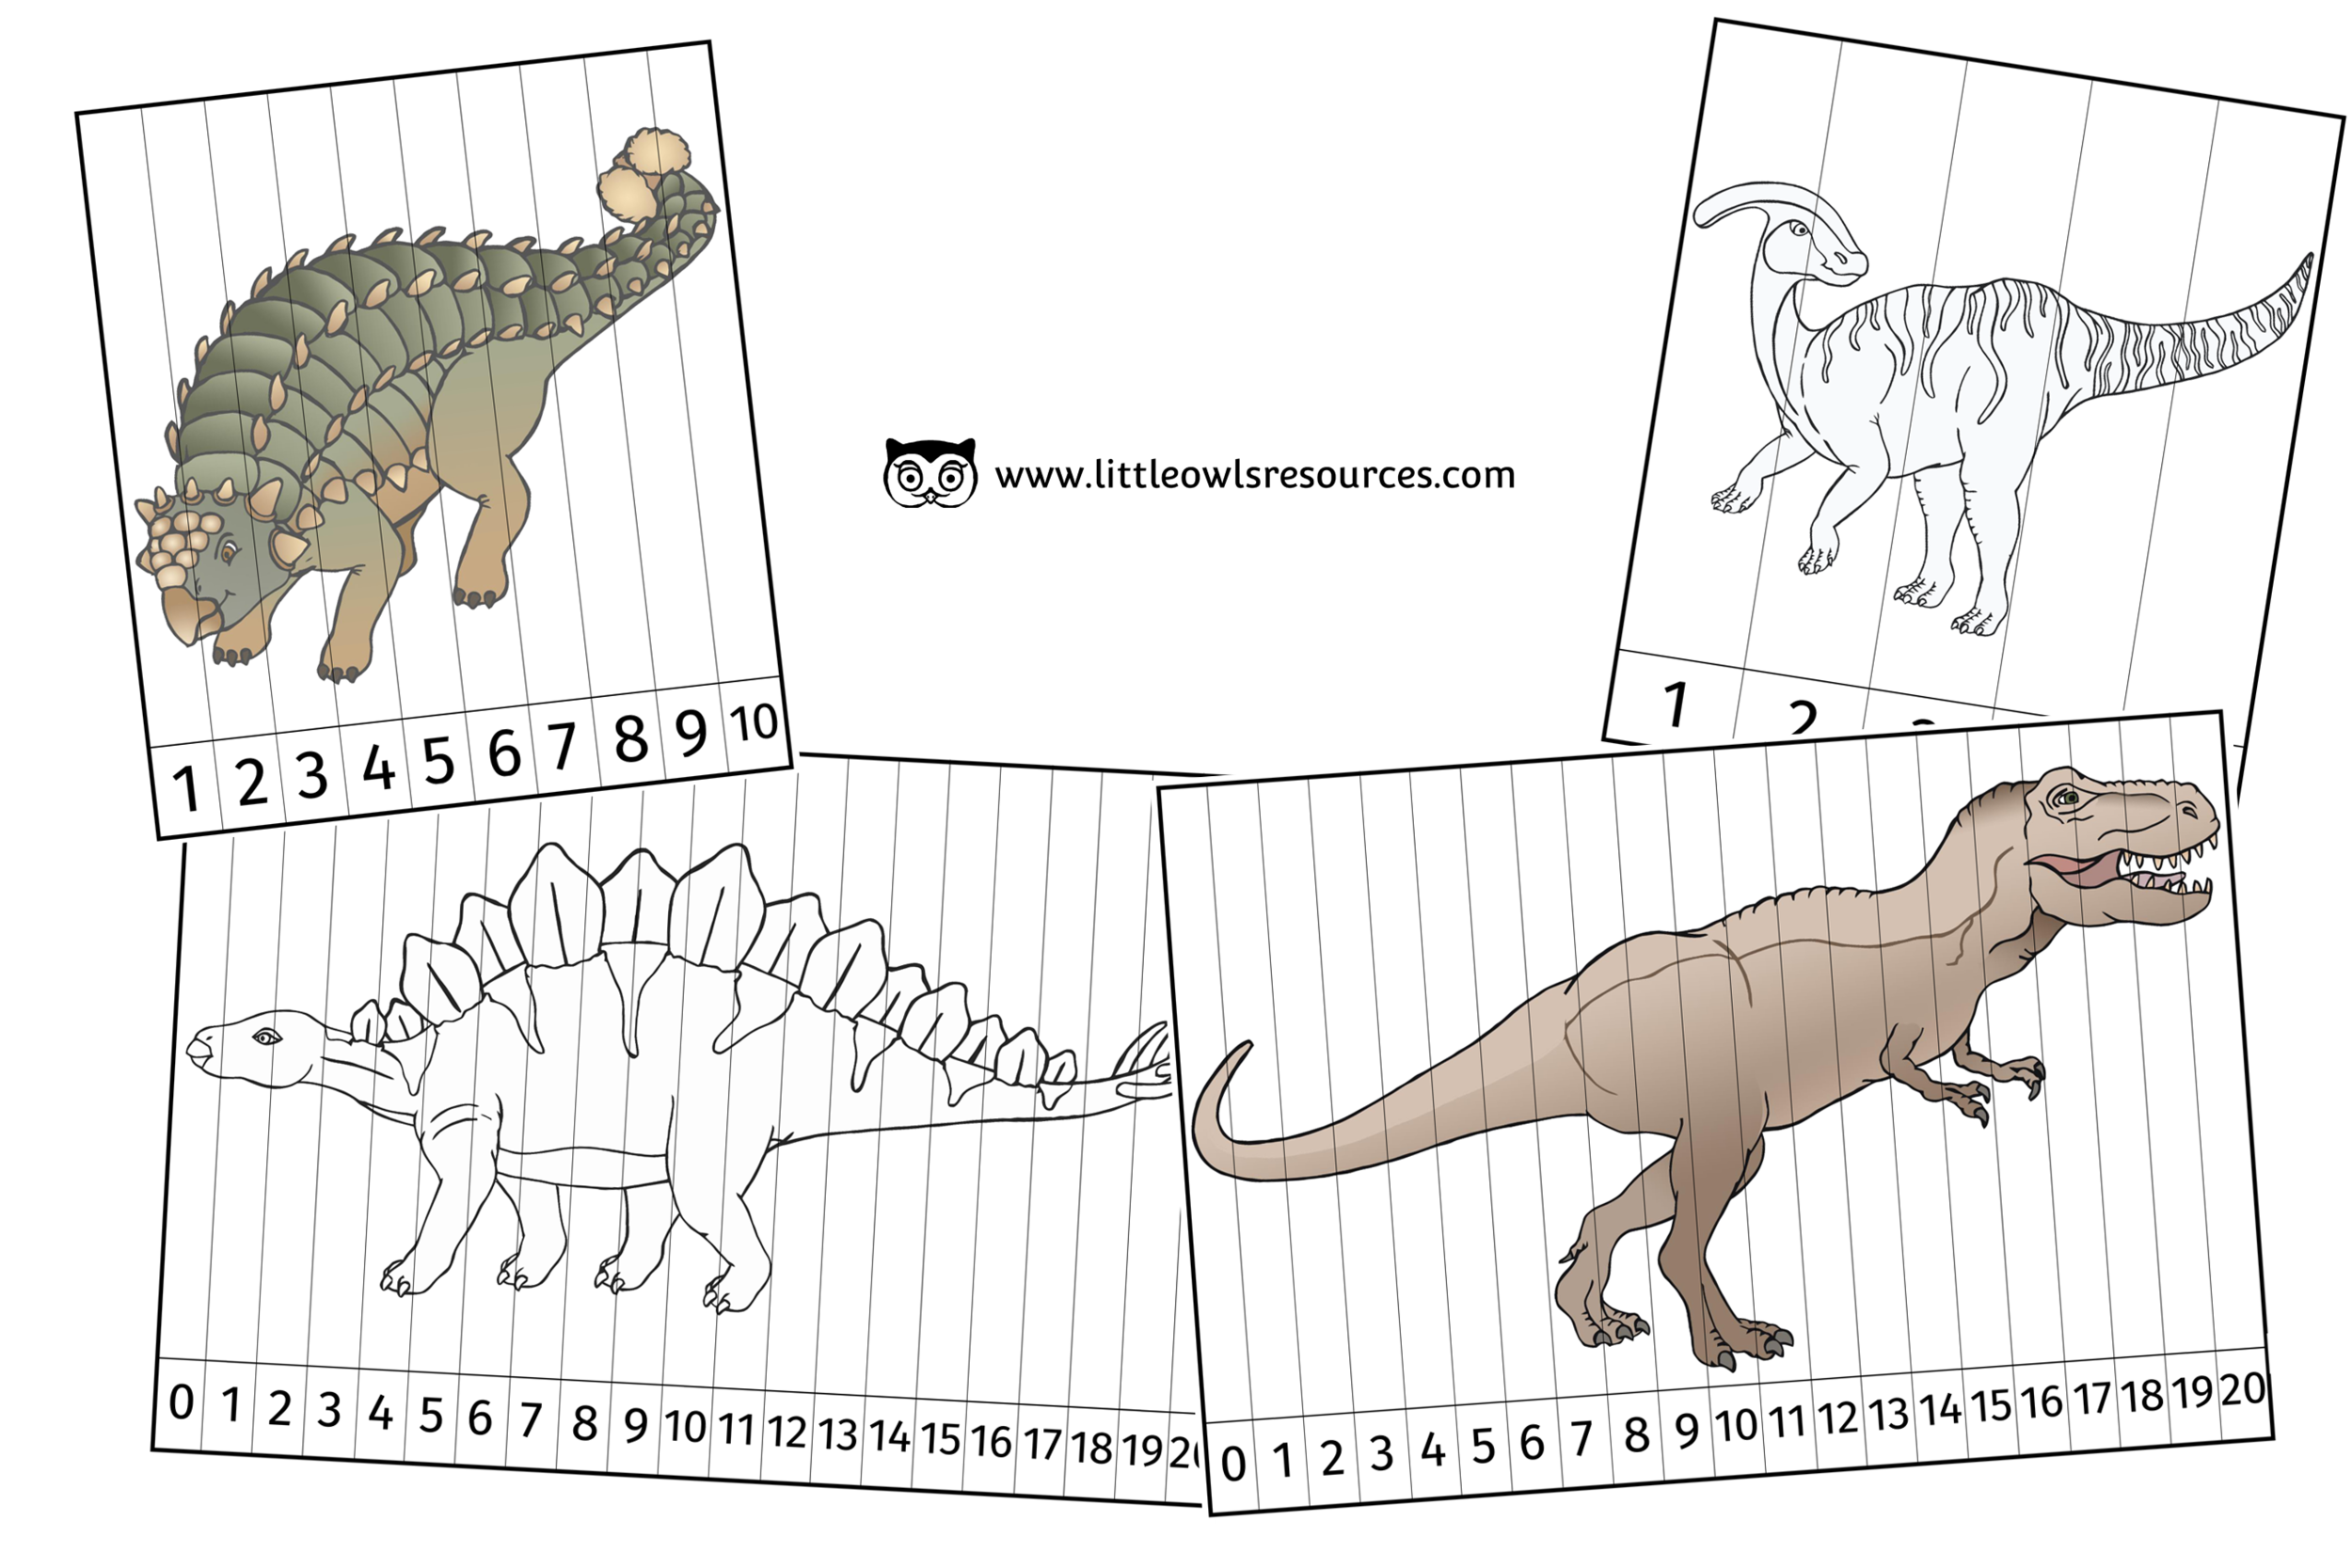 Dinosaur Number Slice Puzzle Pictures